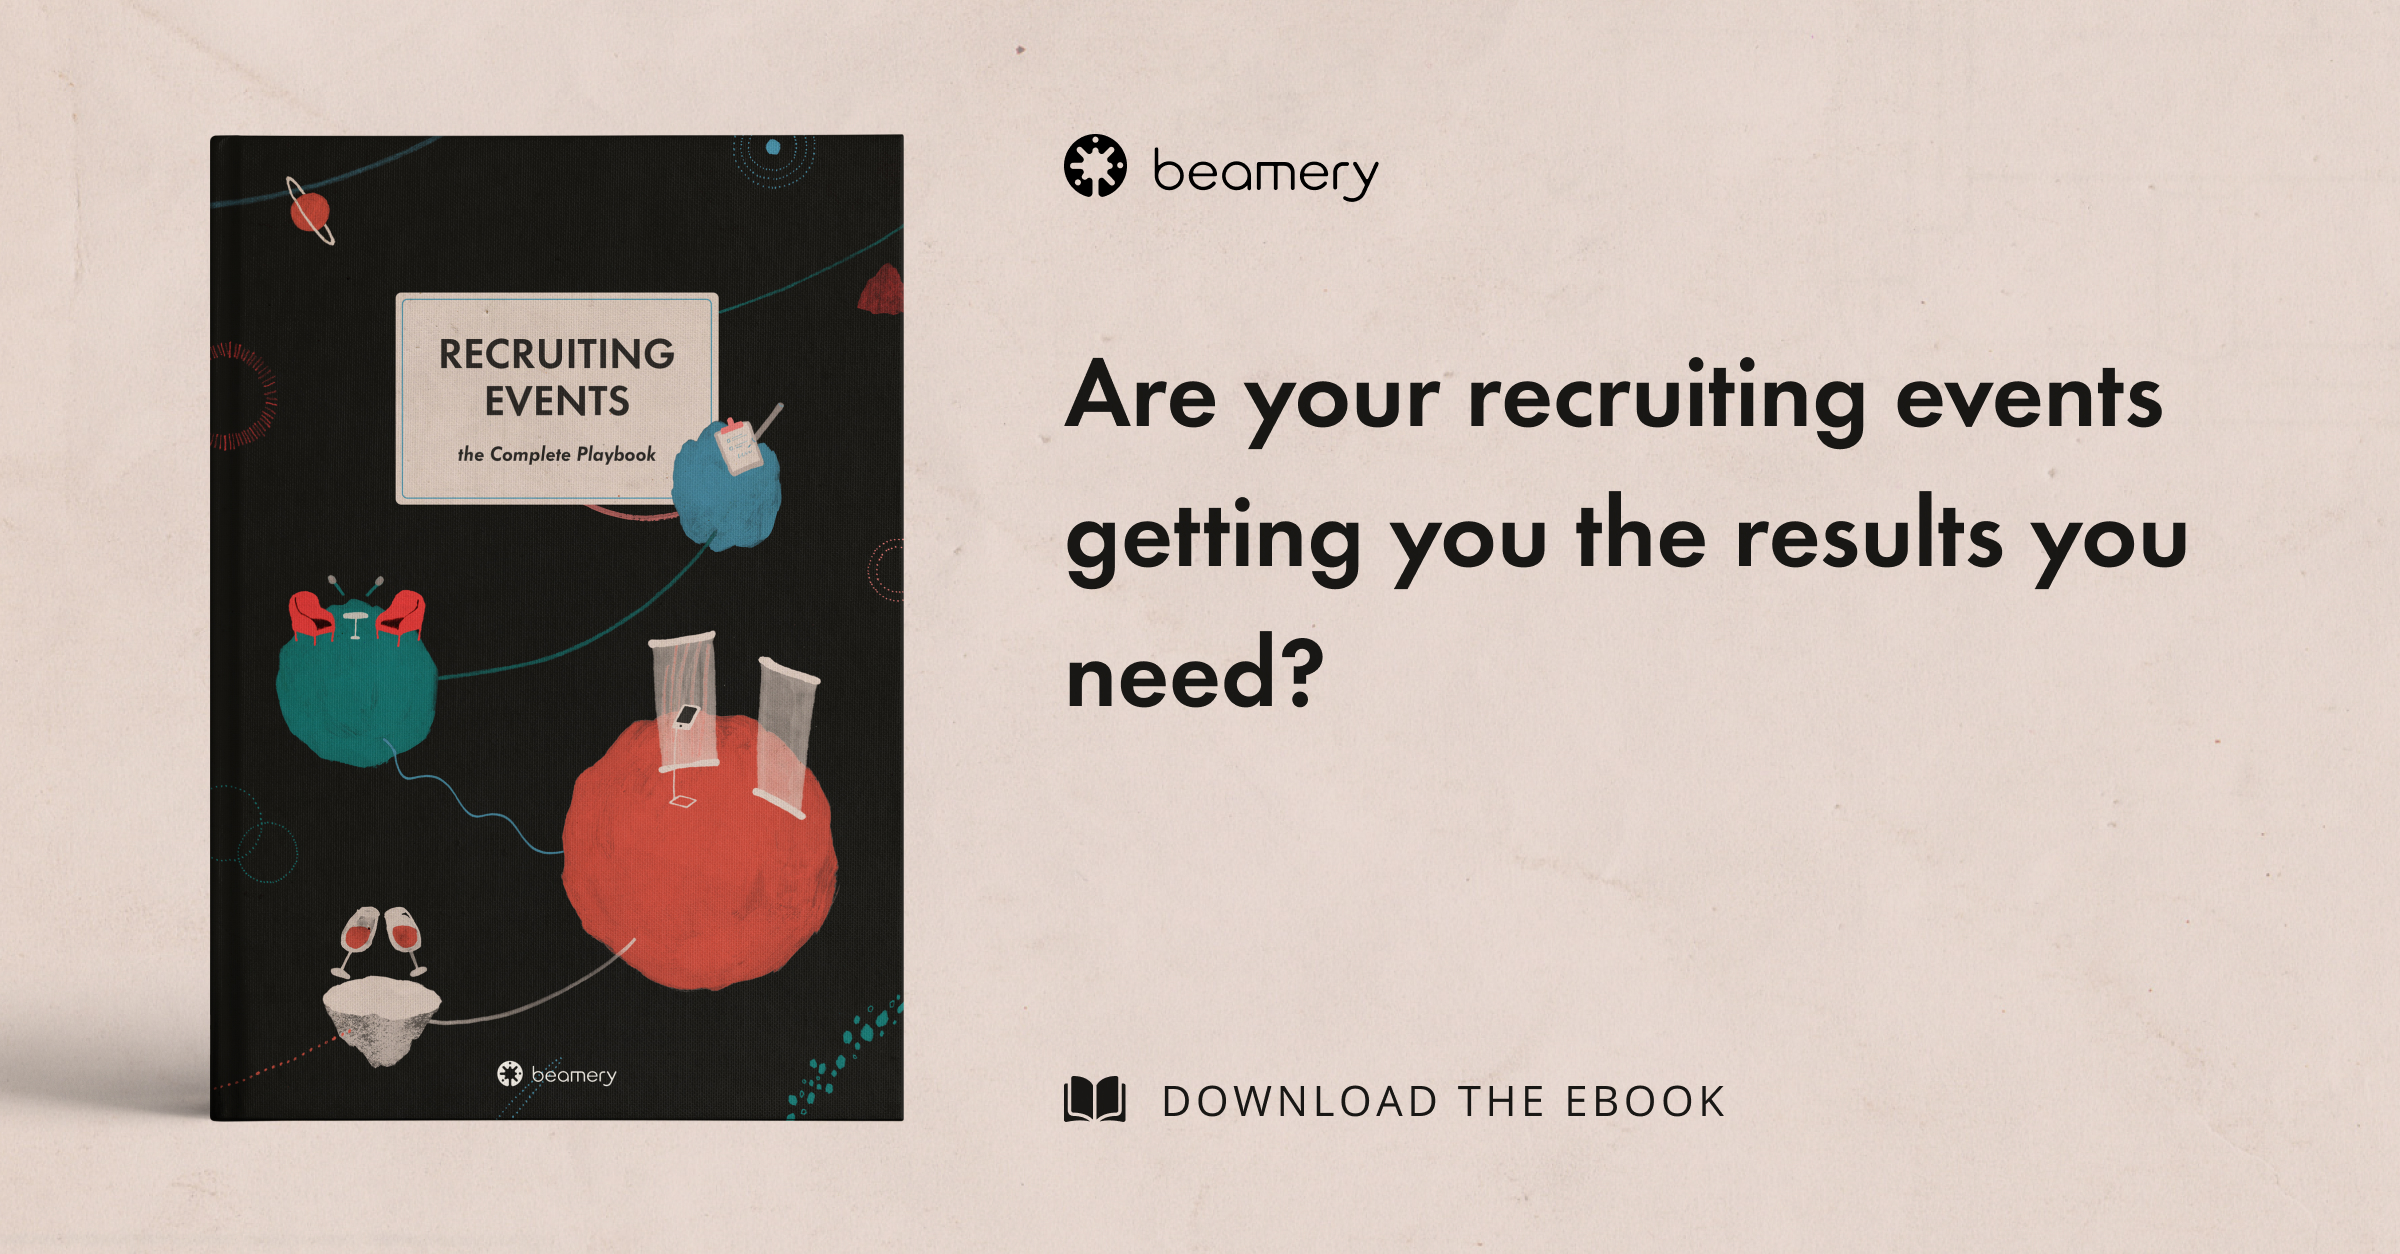 Recruiting-events-the-complete-playbook-ad-2@2x